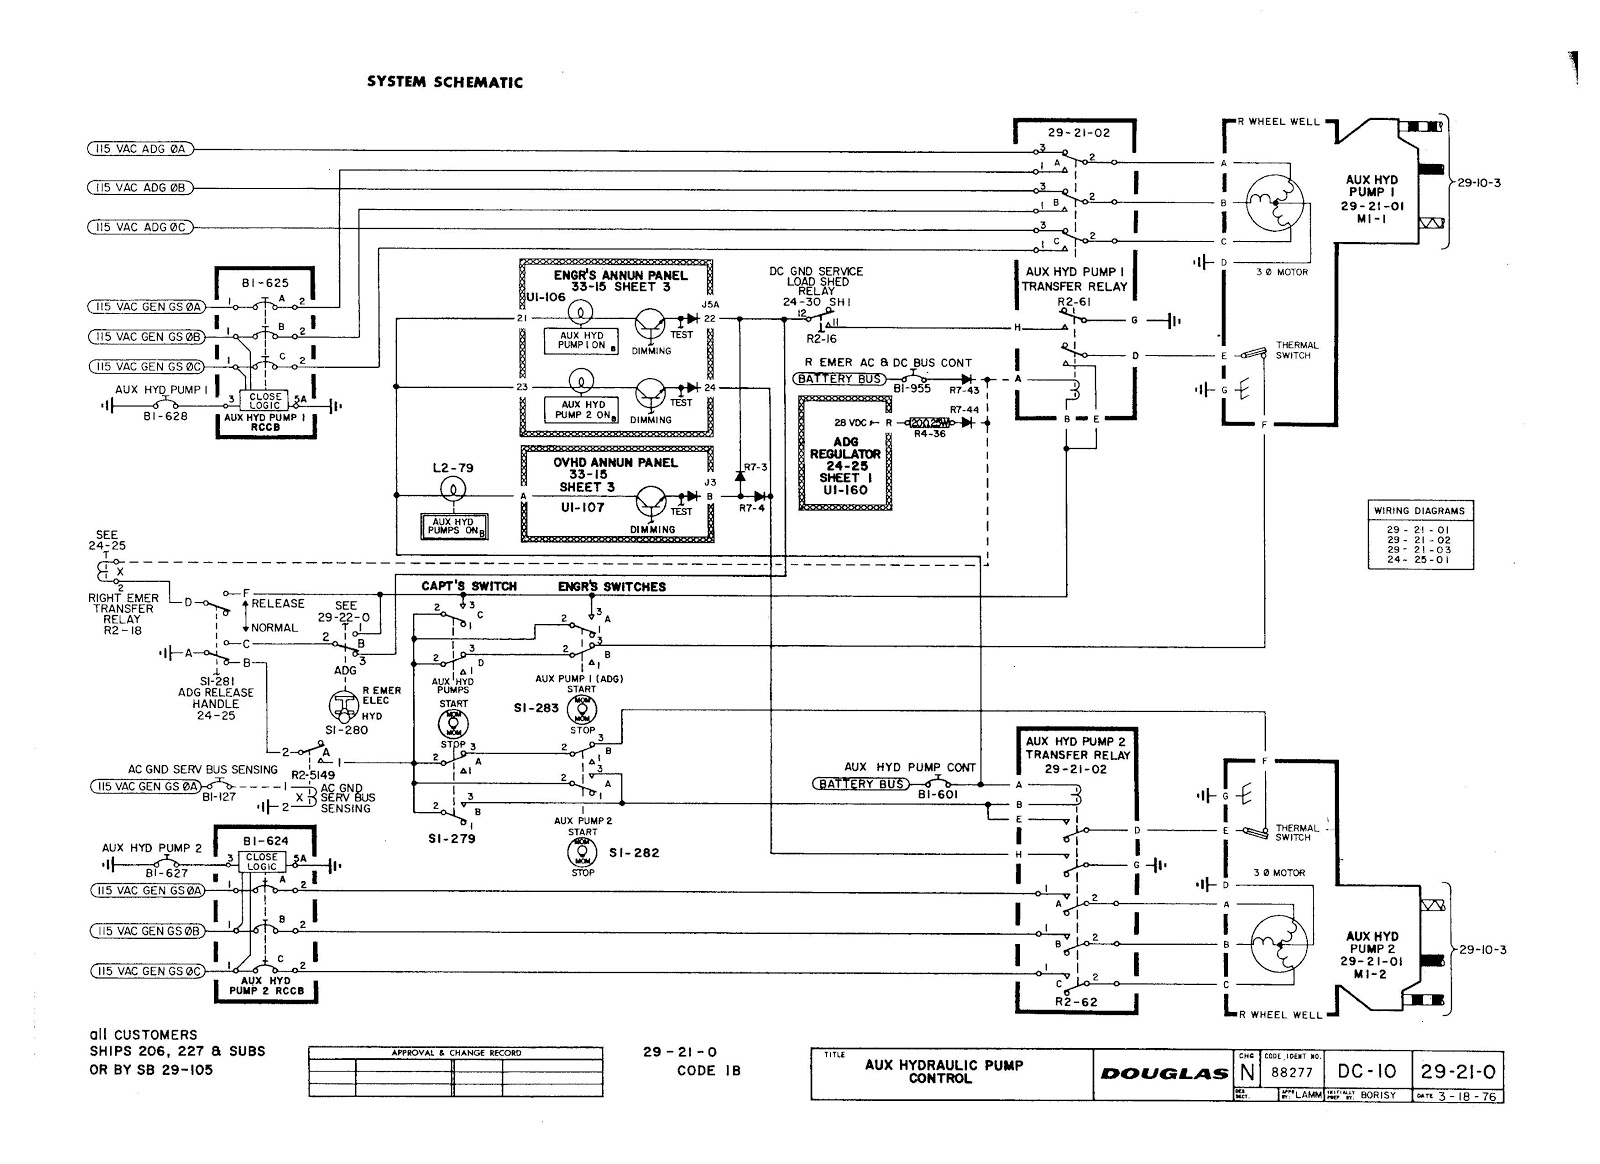 Enjoyable Elementary Wiring Diagrams Download Wiring Diagram Wiring Cloud Tziciuggs Outletorg